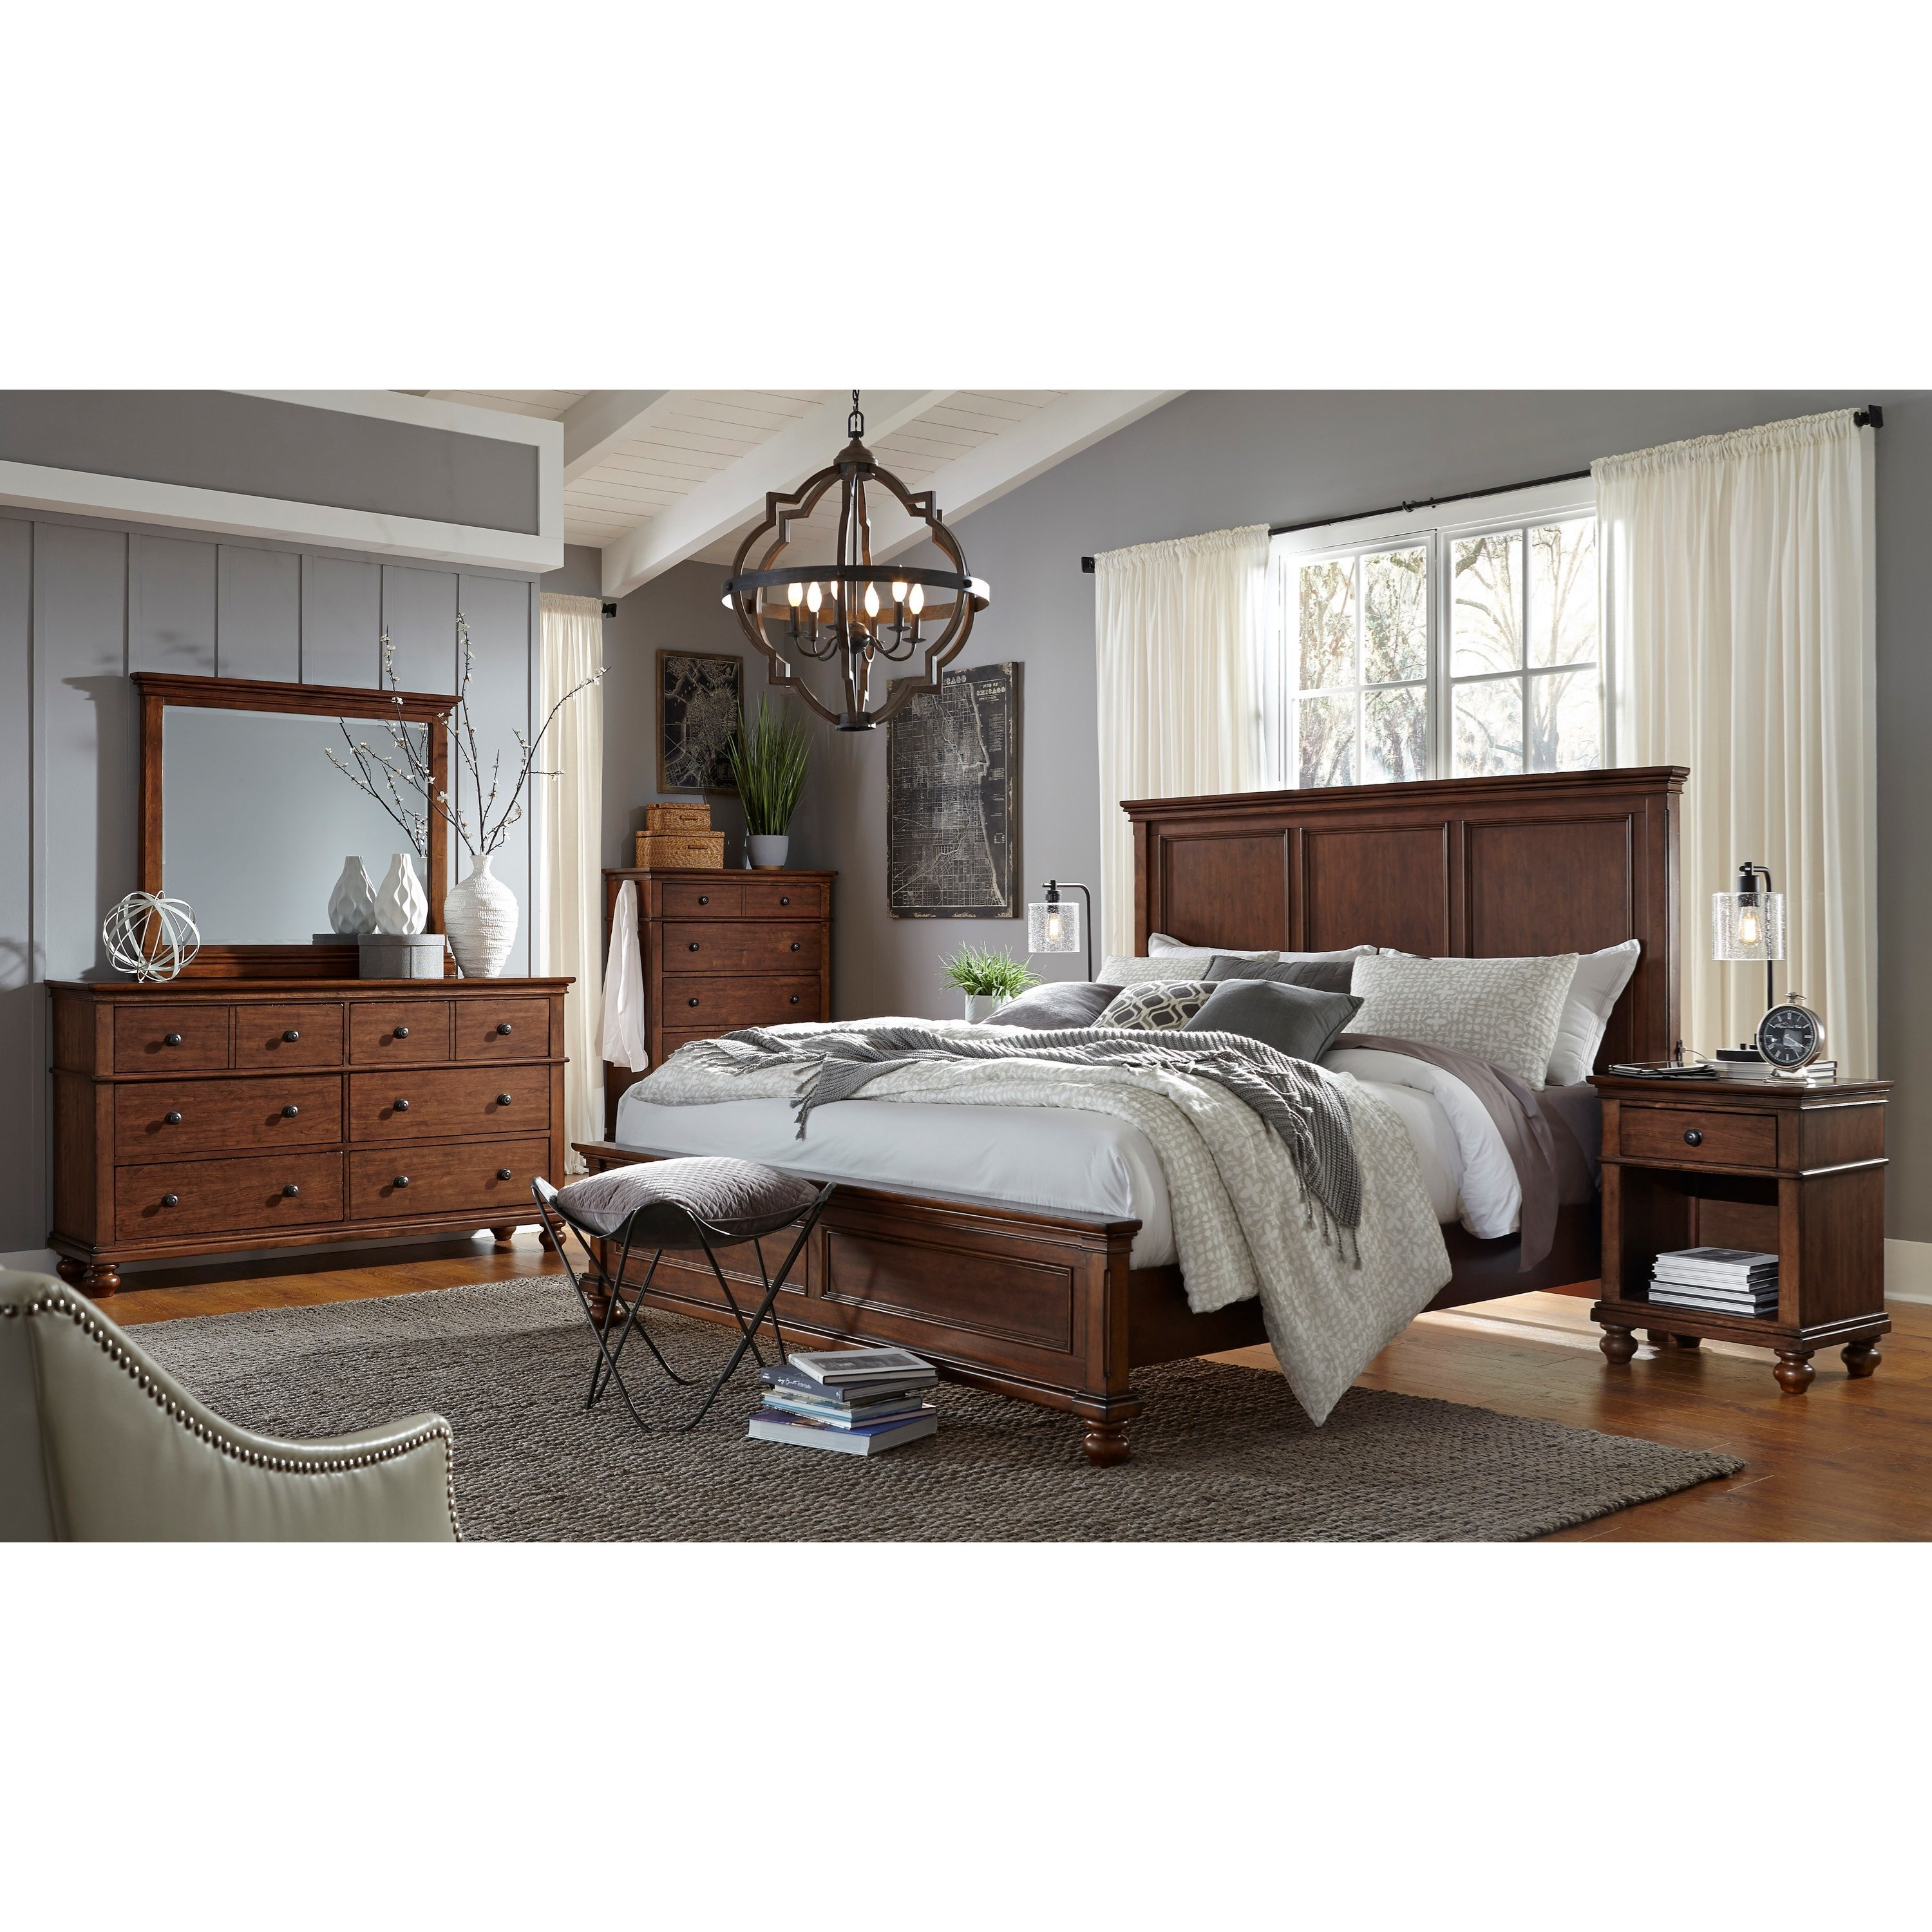 Aspenhome oxford queen bedroom group dunk bright - Bright house bedroom furniture ...